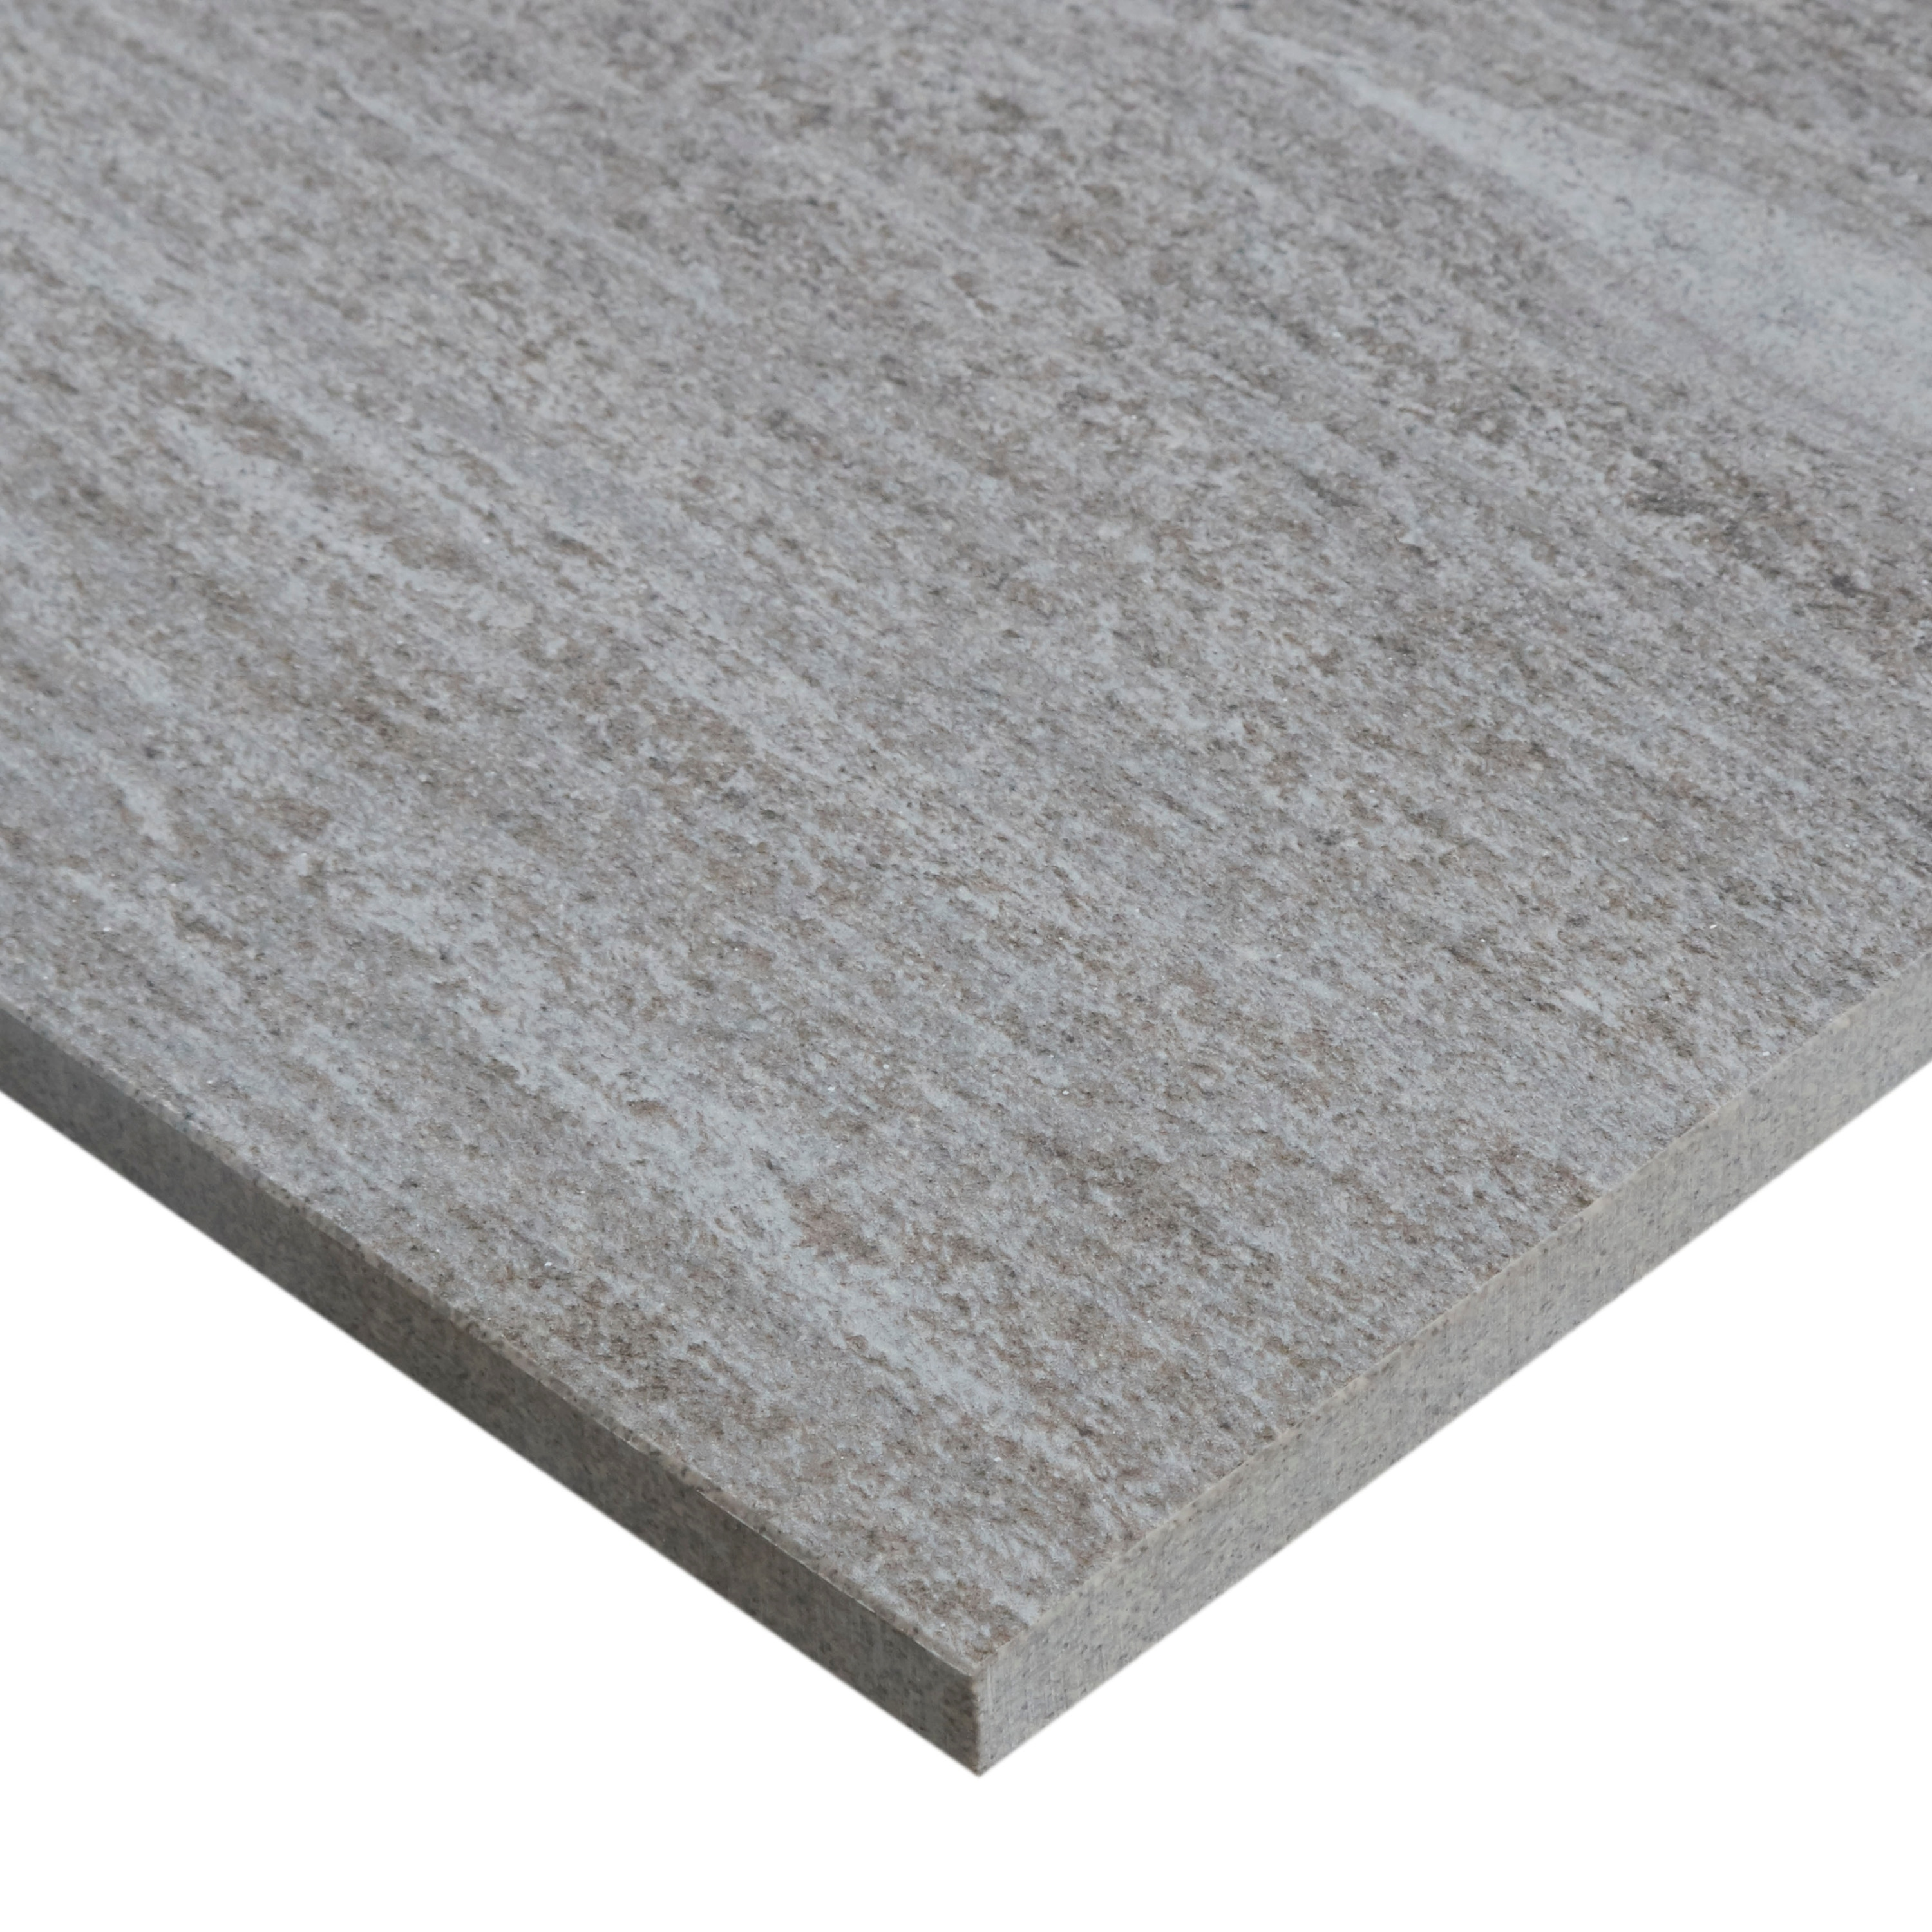 Quartzite inspired 24x48 inch unpolished porcelain floor tile in quartzite inspired 24x48 inch unpolished porcelain floor tile in global gray 24x48 free shipping today overstock 26590982 dailygadgetfo Choice Image